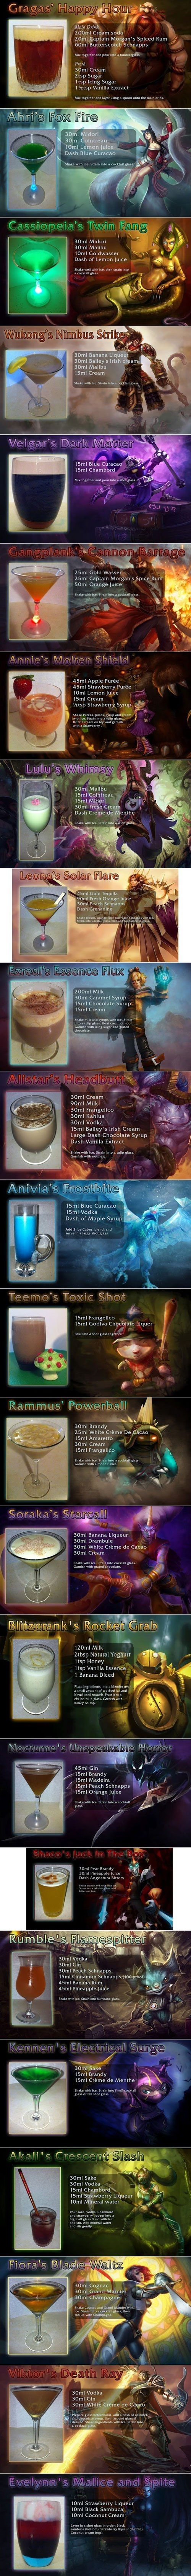 funny-drinks-League-of-Legends - and some of them sound really good!